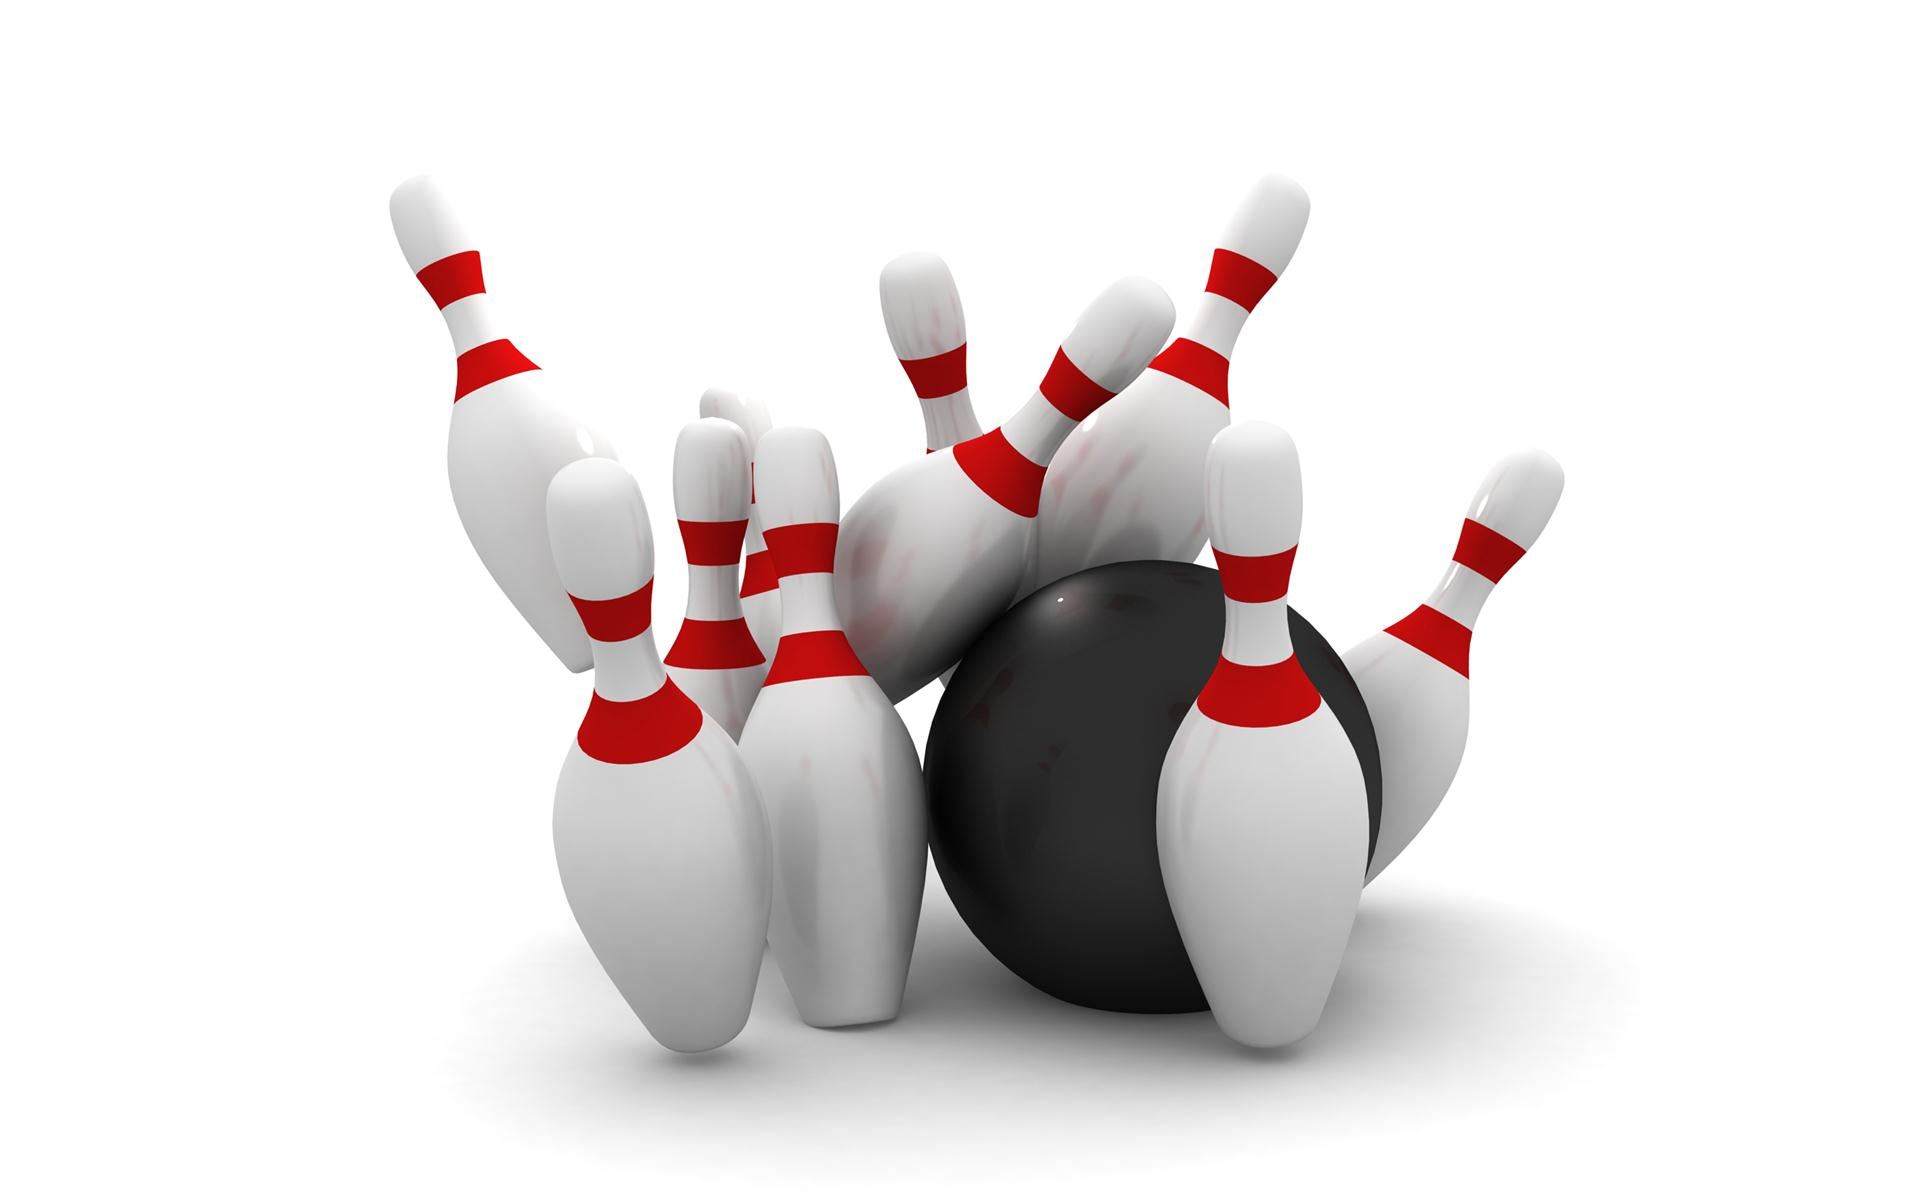 Bowling Wallpapers High Quality | Download Free